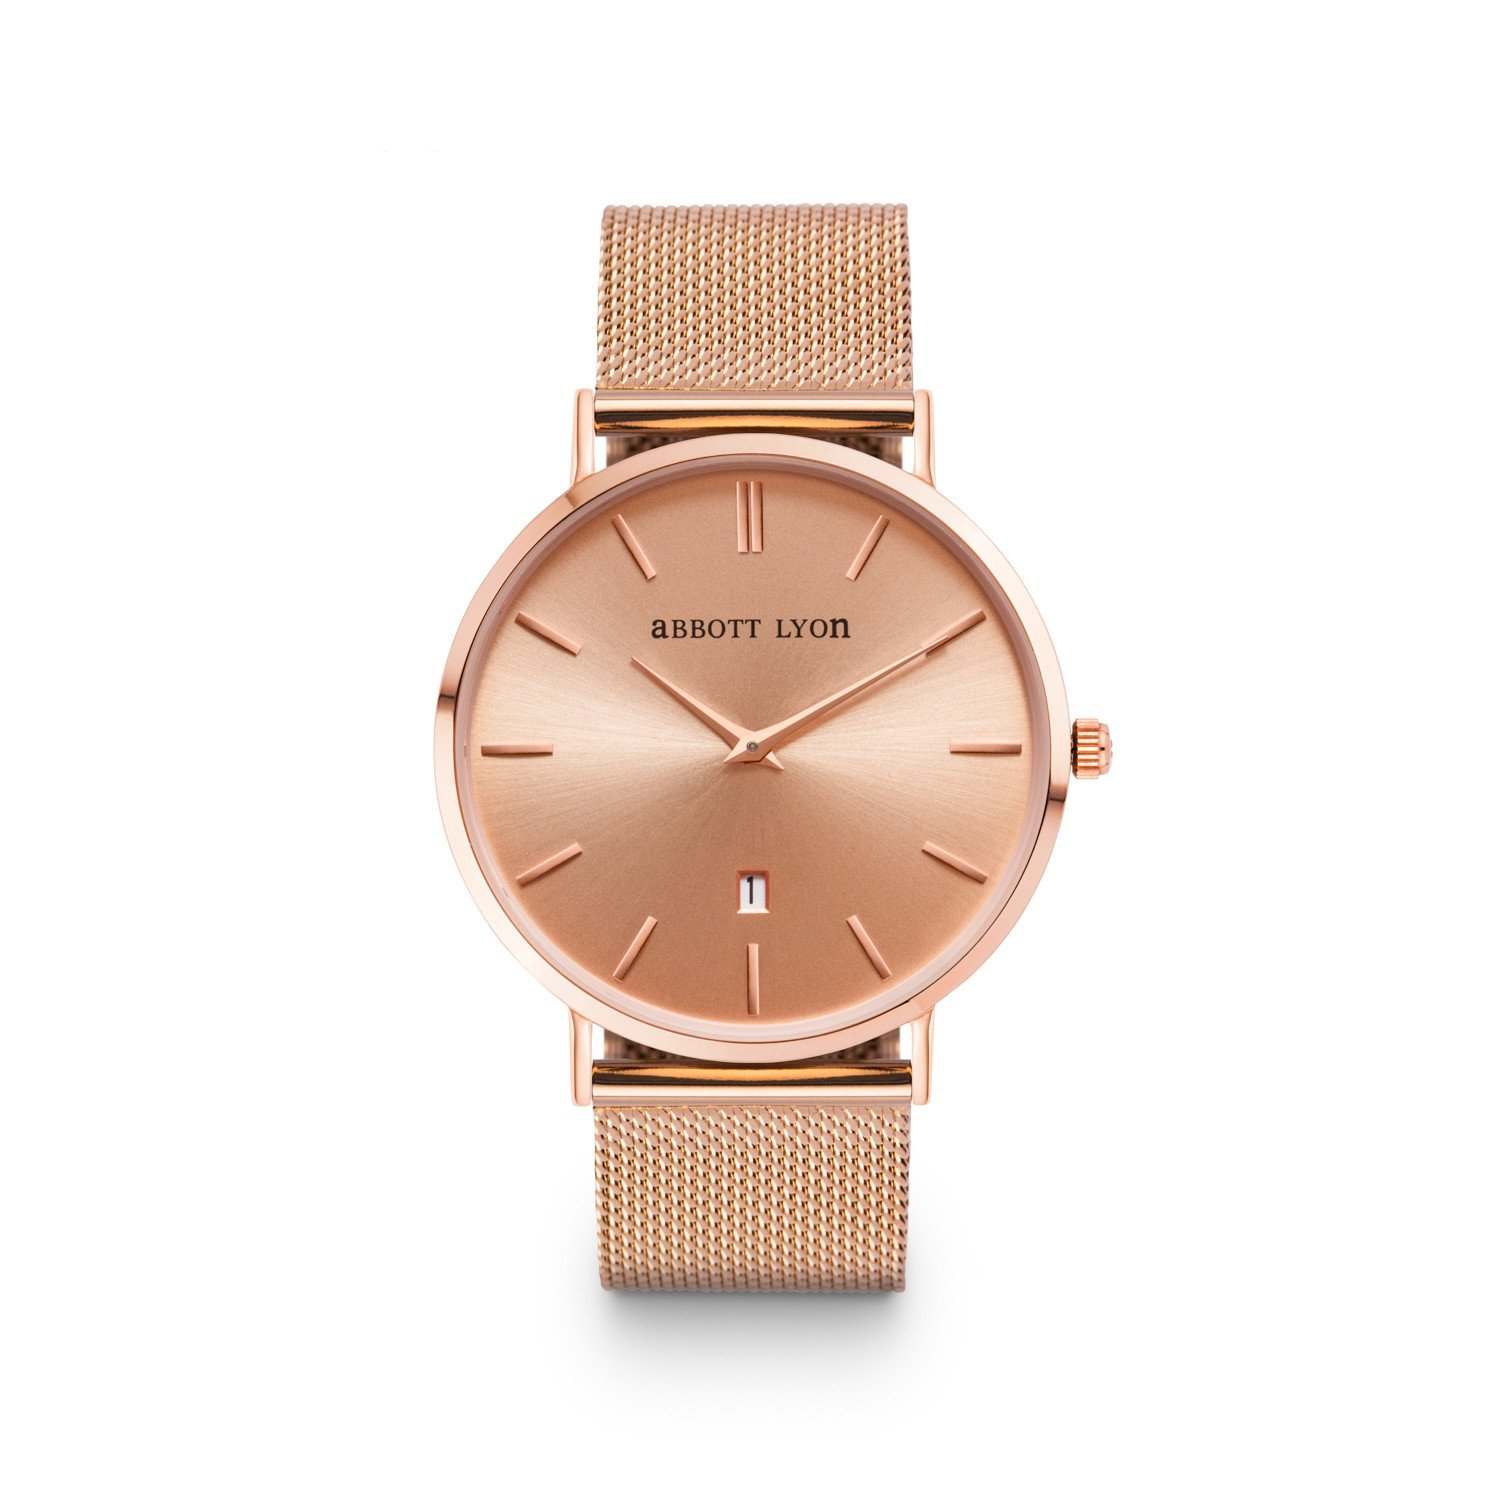 Abbott Lyon Rose Gold Chain Stellar 40 Watch